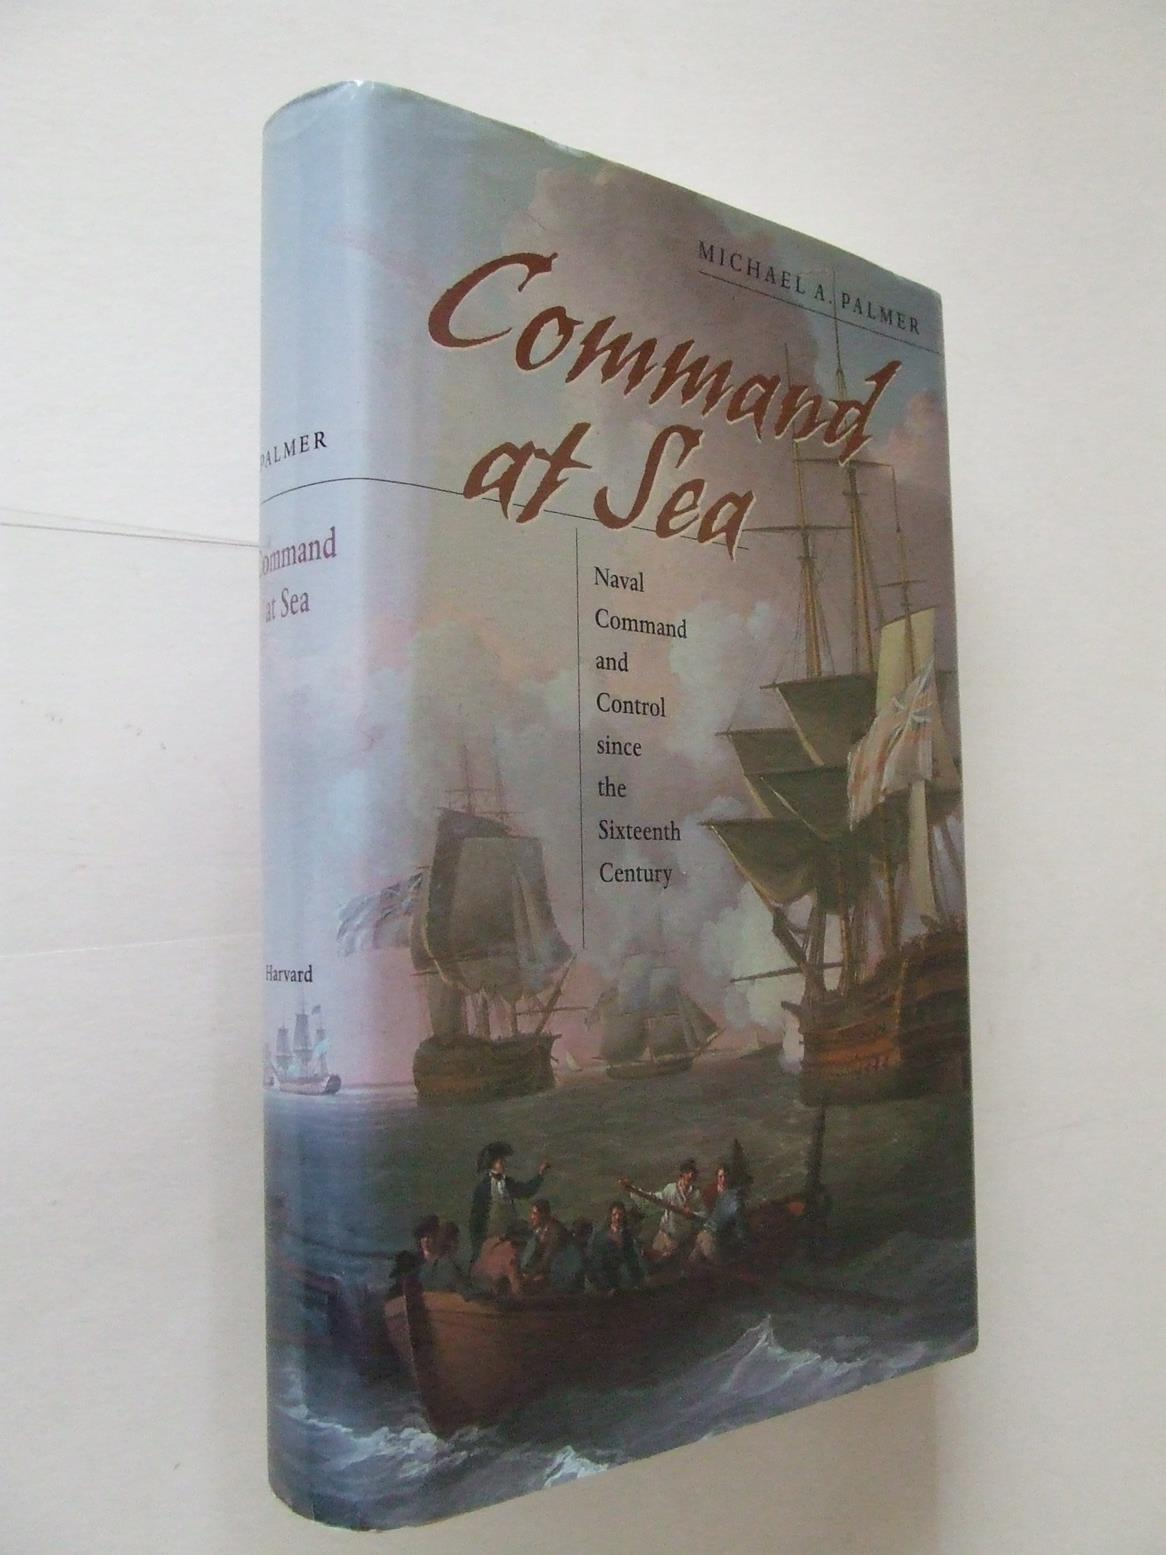 Command at Sea, naval command and control since the sixteenth century